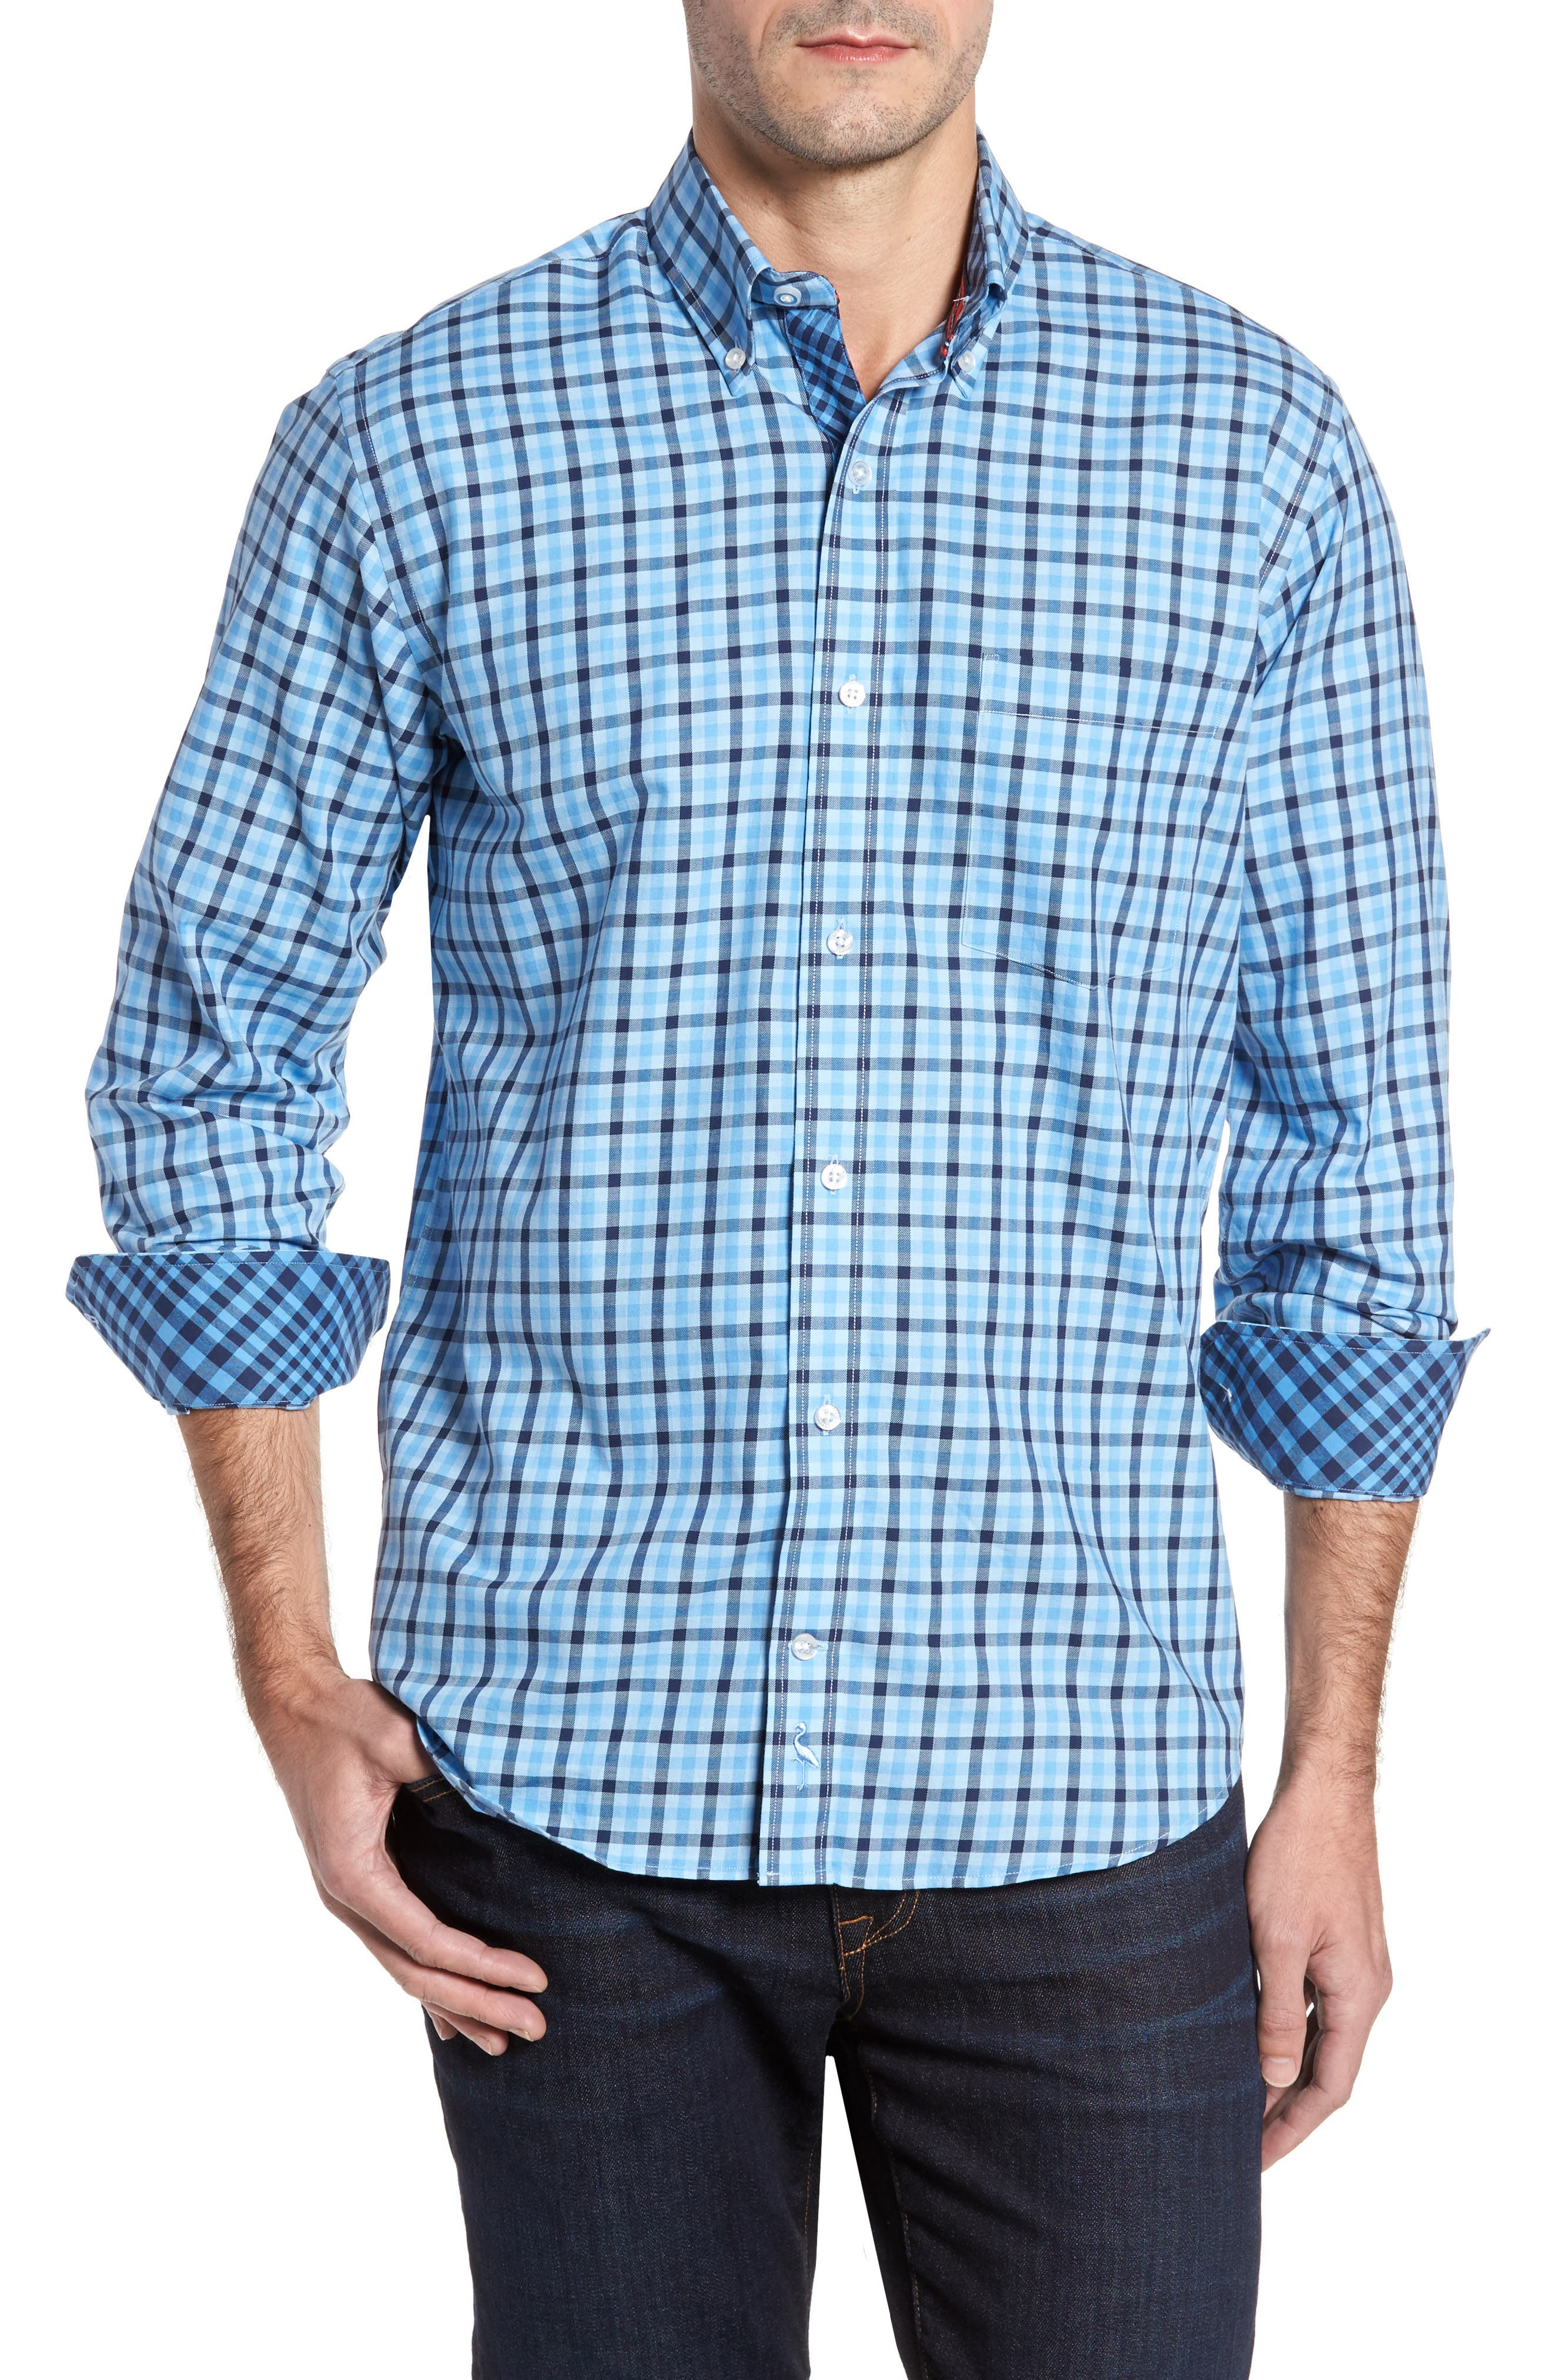 Alternate Image 1 Selected - TailorByrd Bridge City Gingham Twill Sport Shirt